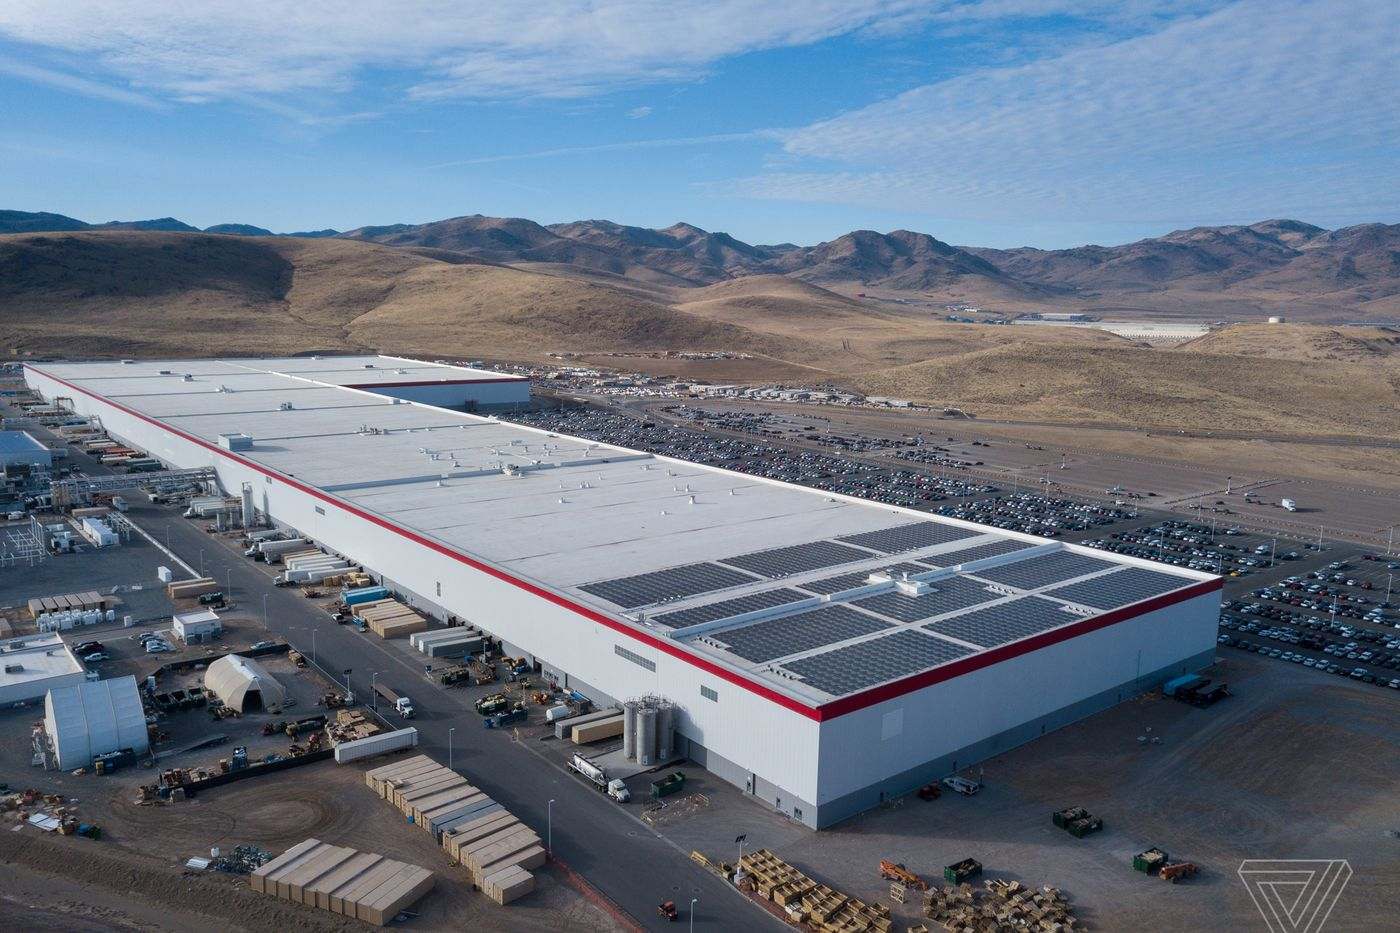 Tesla S Fourth Gigafactory Will Be In Berlin Elon Musk Says The Verge